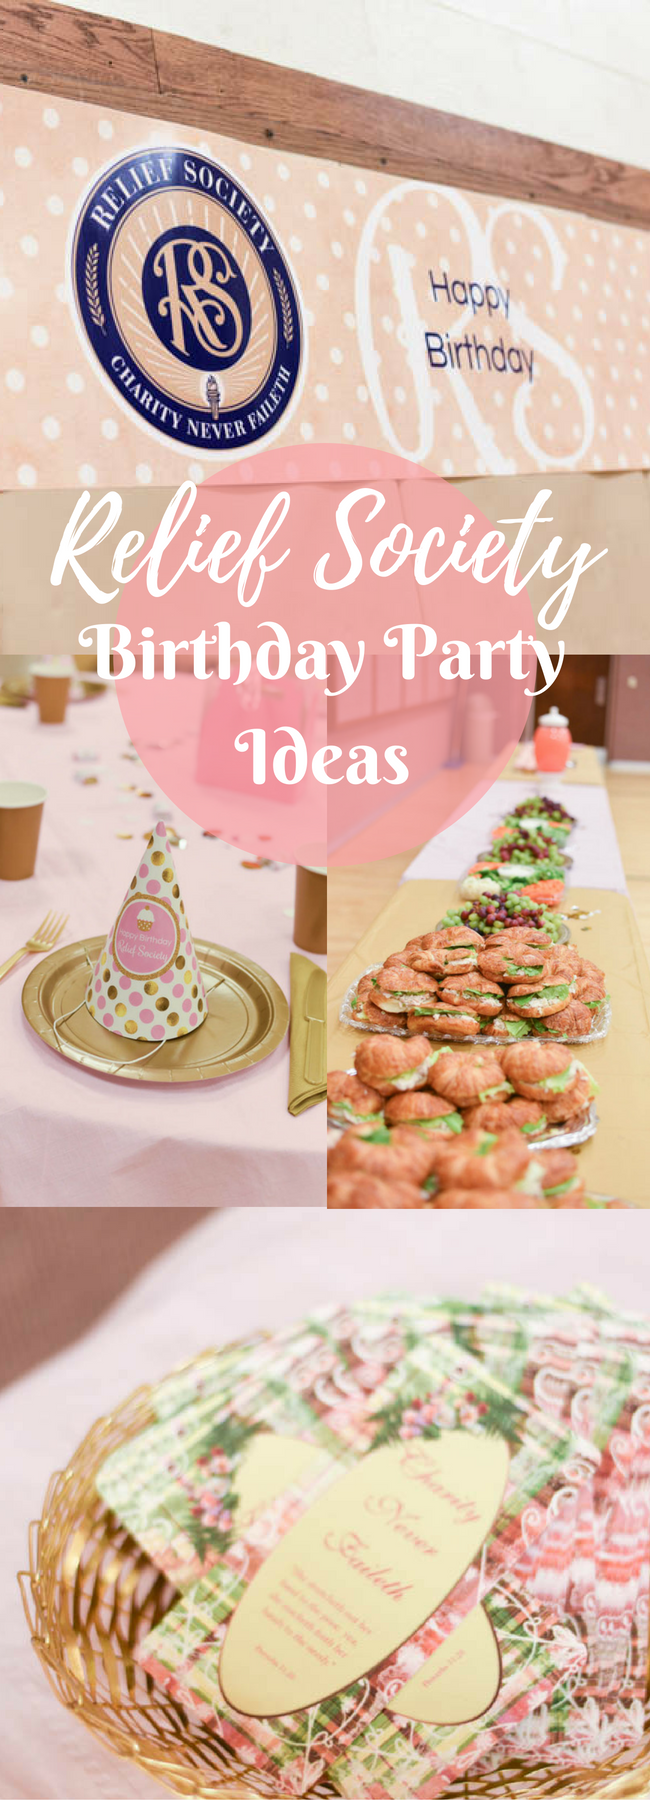 relief society activities / relief society birthday / relief society / relief society birthday ideas / relief society birthday gifts / relief society enrichment via @clarkscondensed